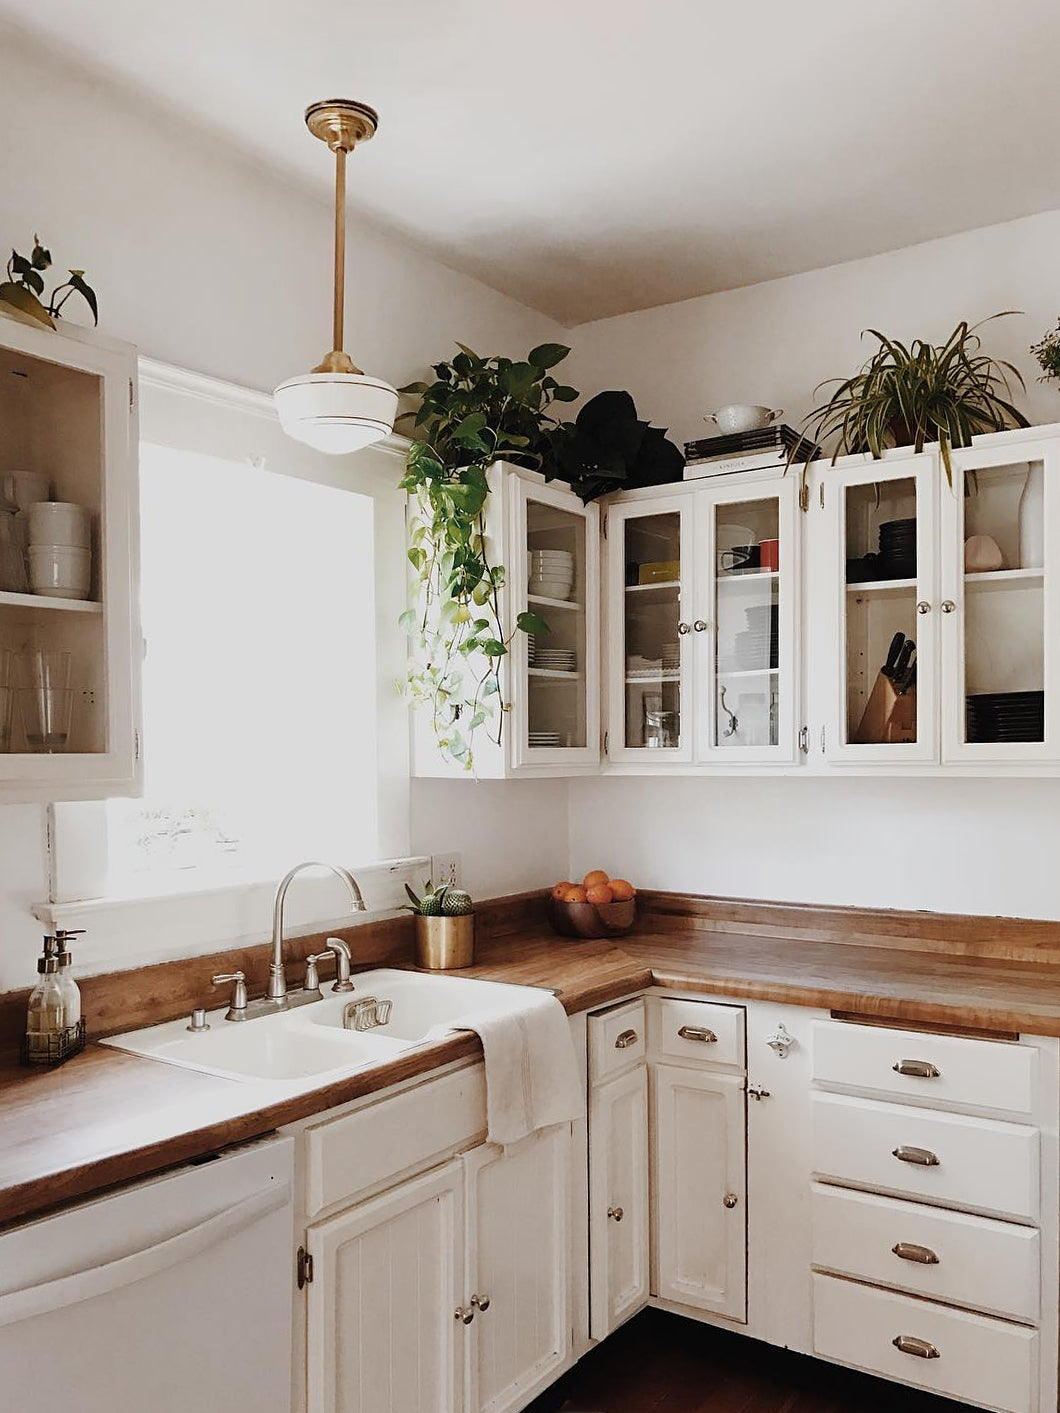 white kitchen with plants on cabinets